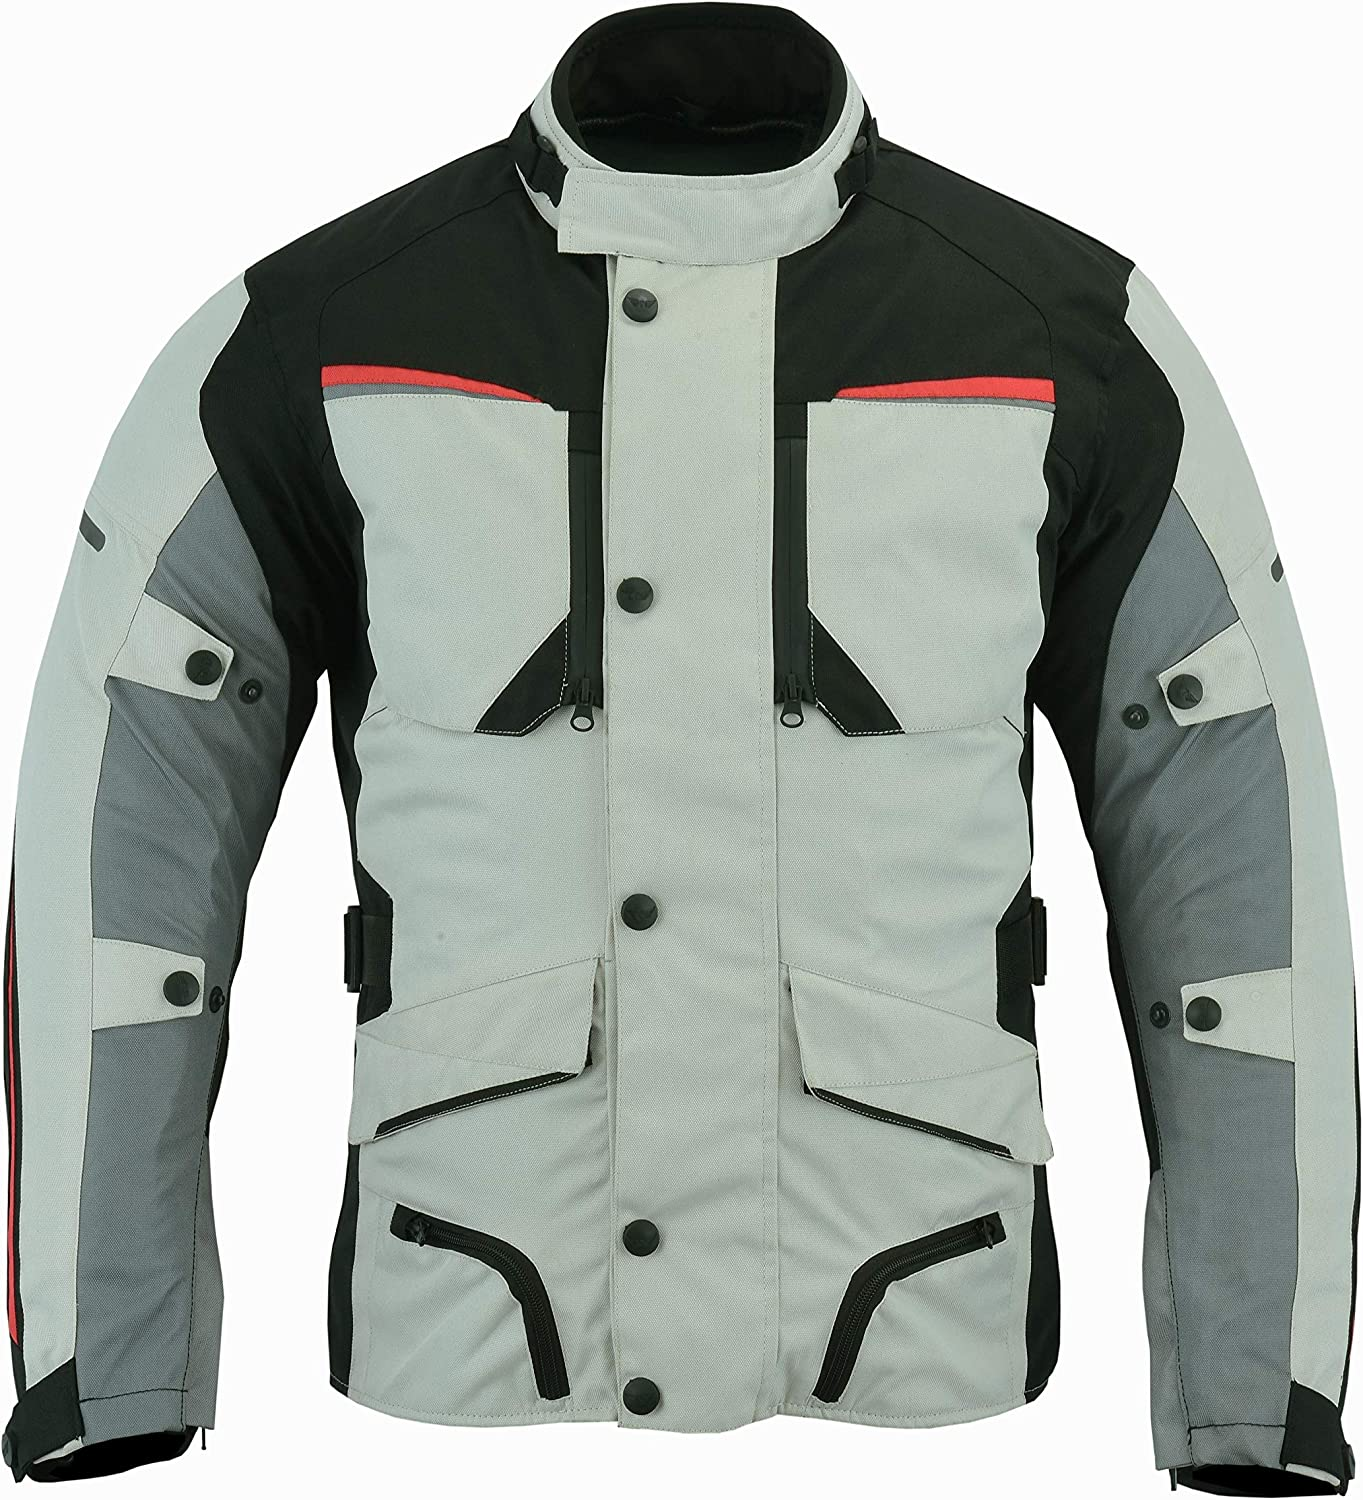 44-46 Mens Waterproof Armoured Motorcycle//Motorbike Jacket Winter Summer Off White//Grey Colour Textile Codura Fabric CE Armoured XXL